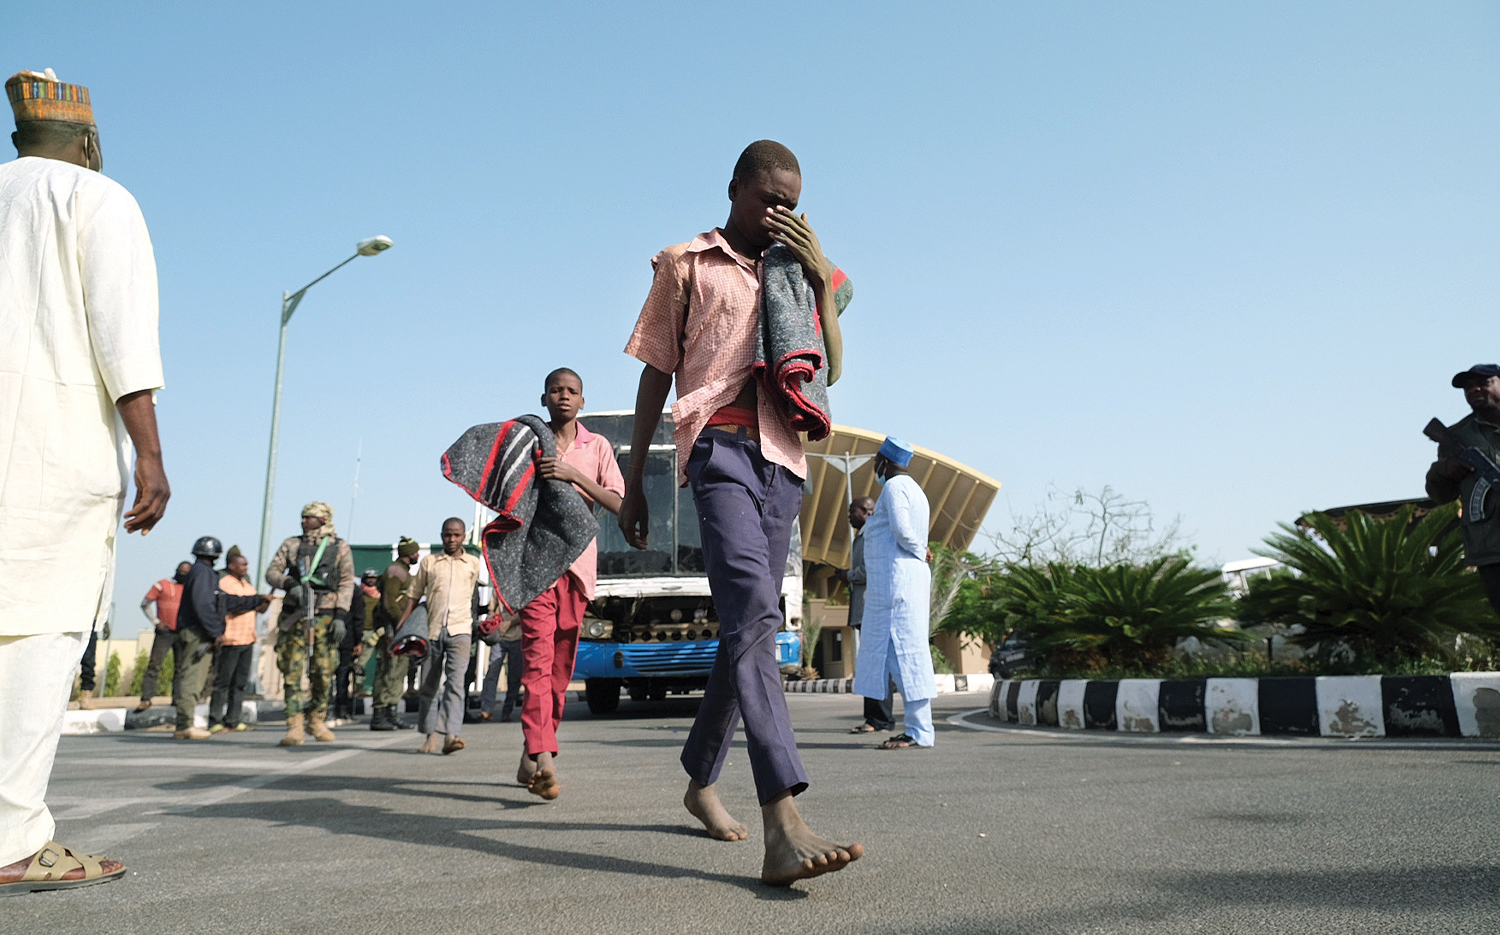 Students from the Government Science Secondary School walk to a government building on Dec. 18, 2020, a day after their release from armed abductors.